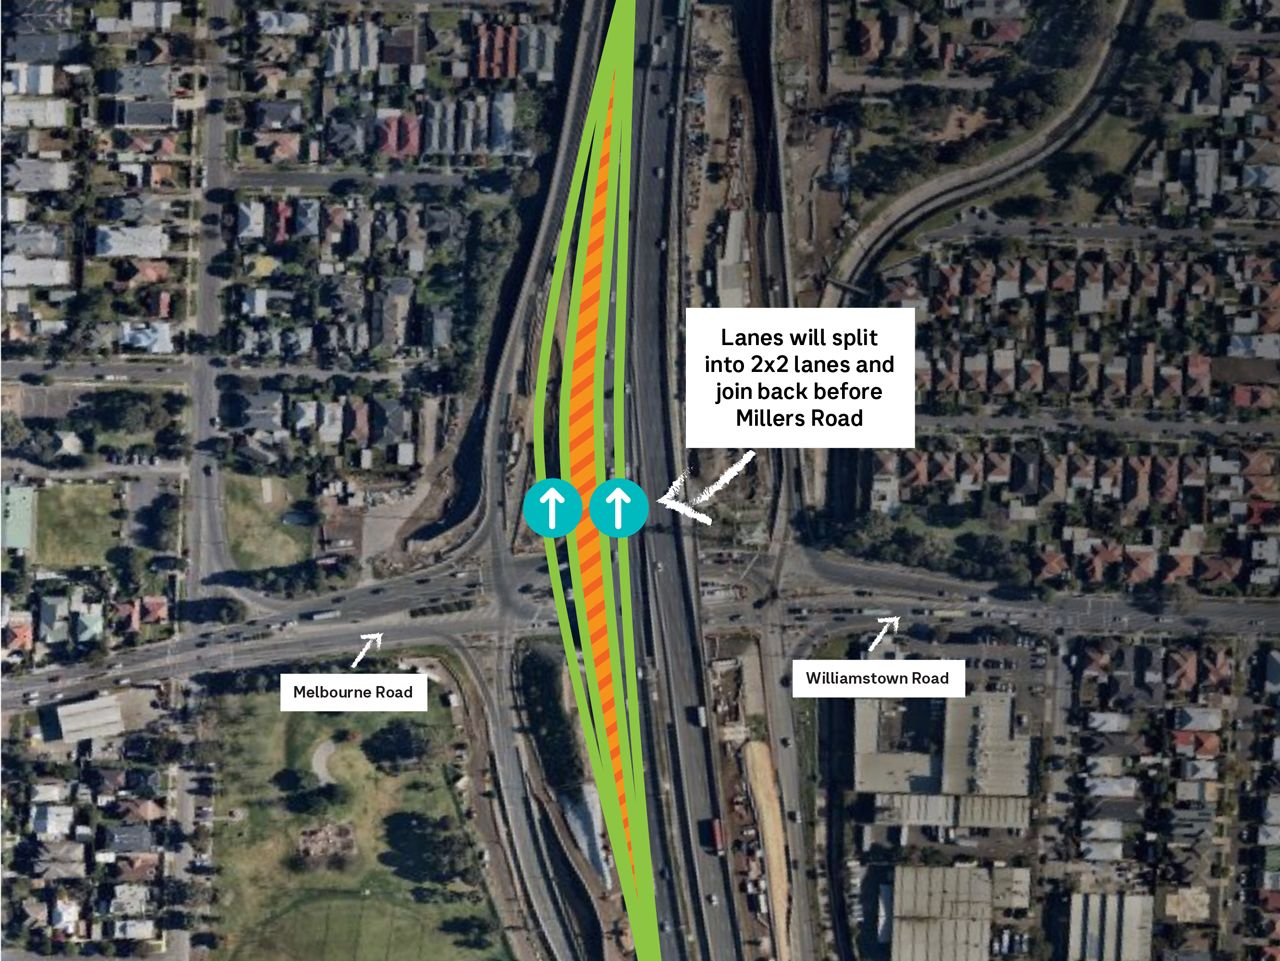 West Gate Freeway outbound lane changes between Williamstown and Millers Roads. Please refer to the text for more information.